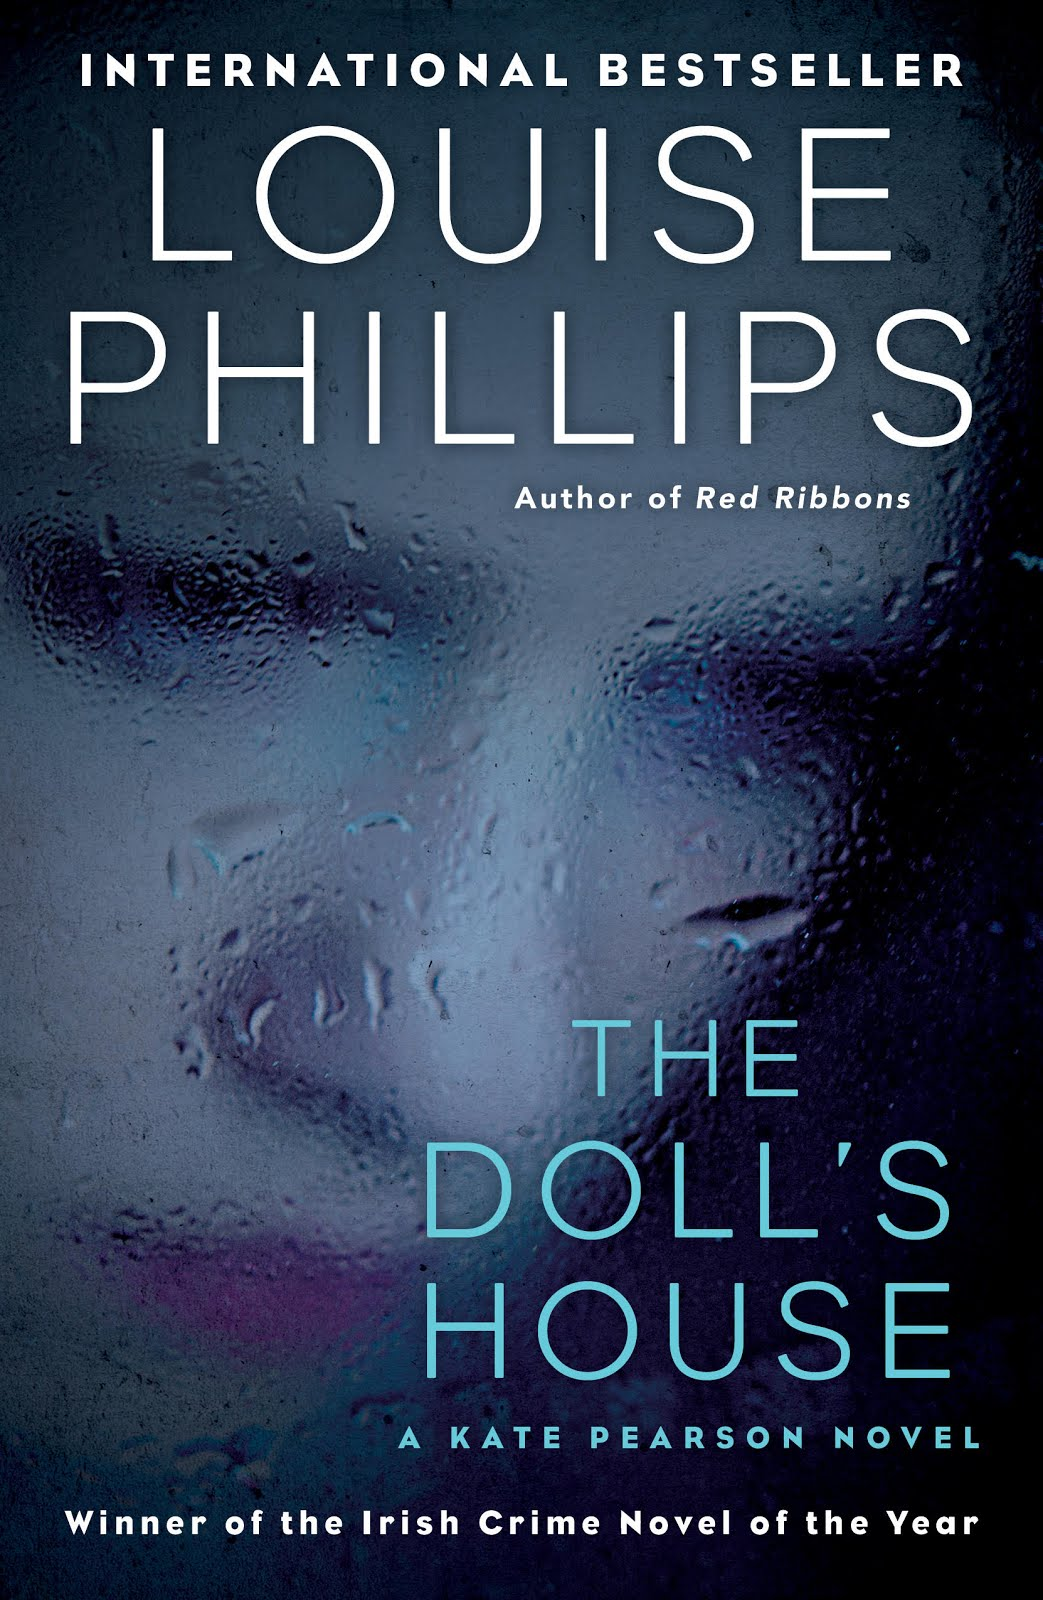 The Doll's House - Kate Pearson #2